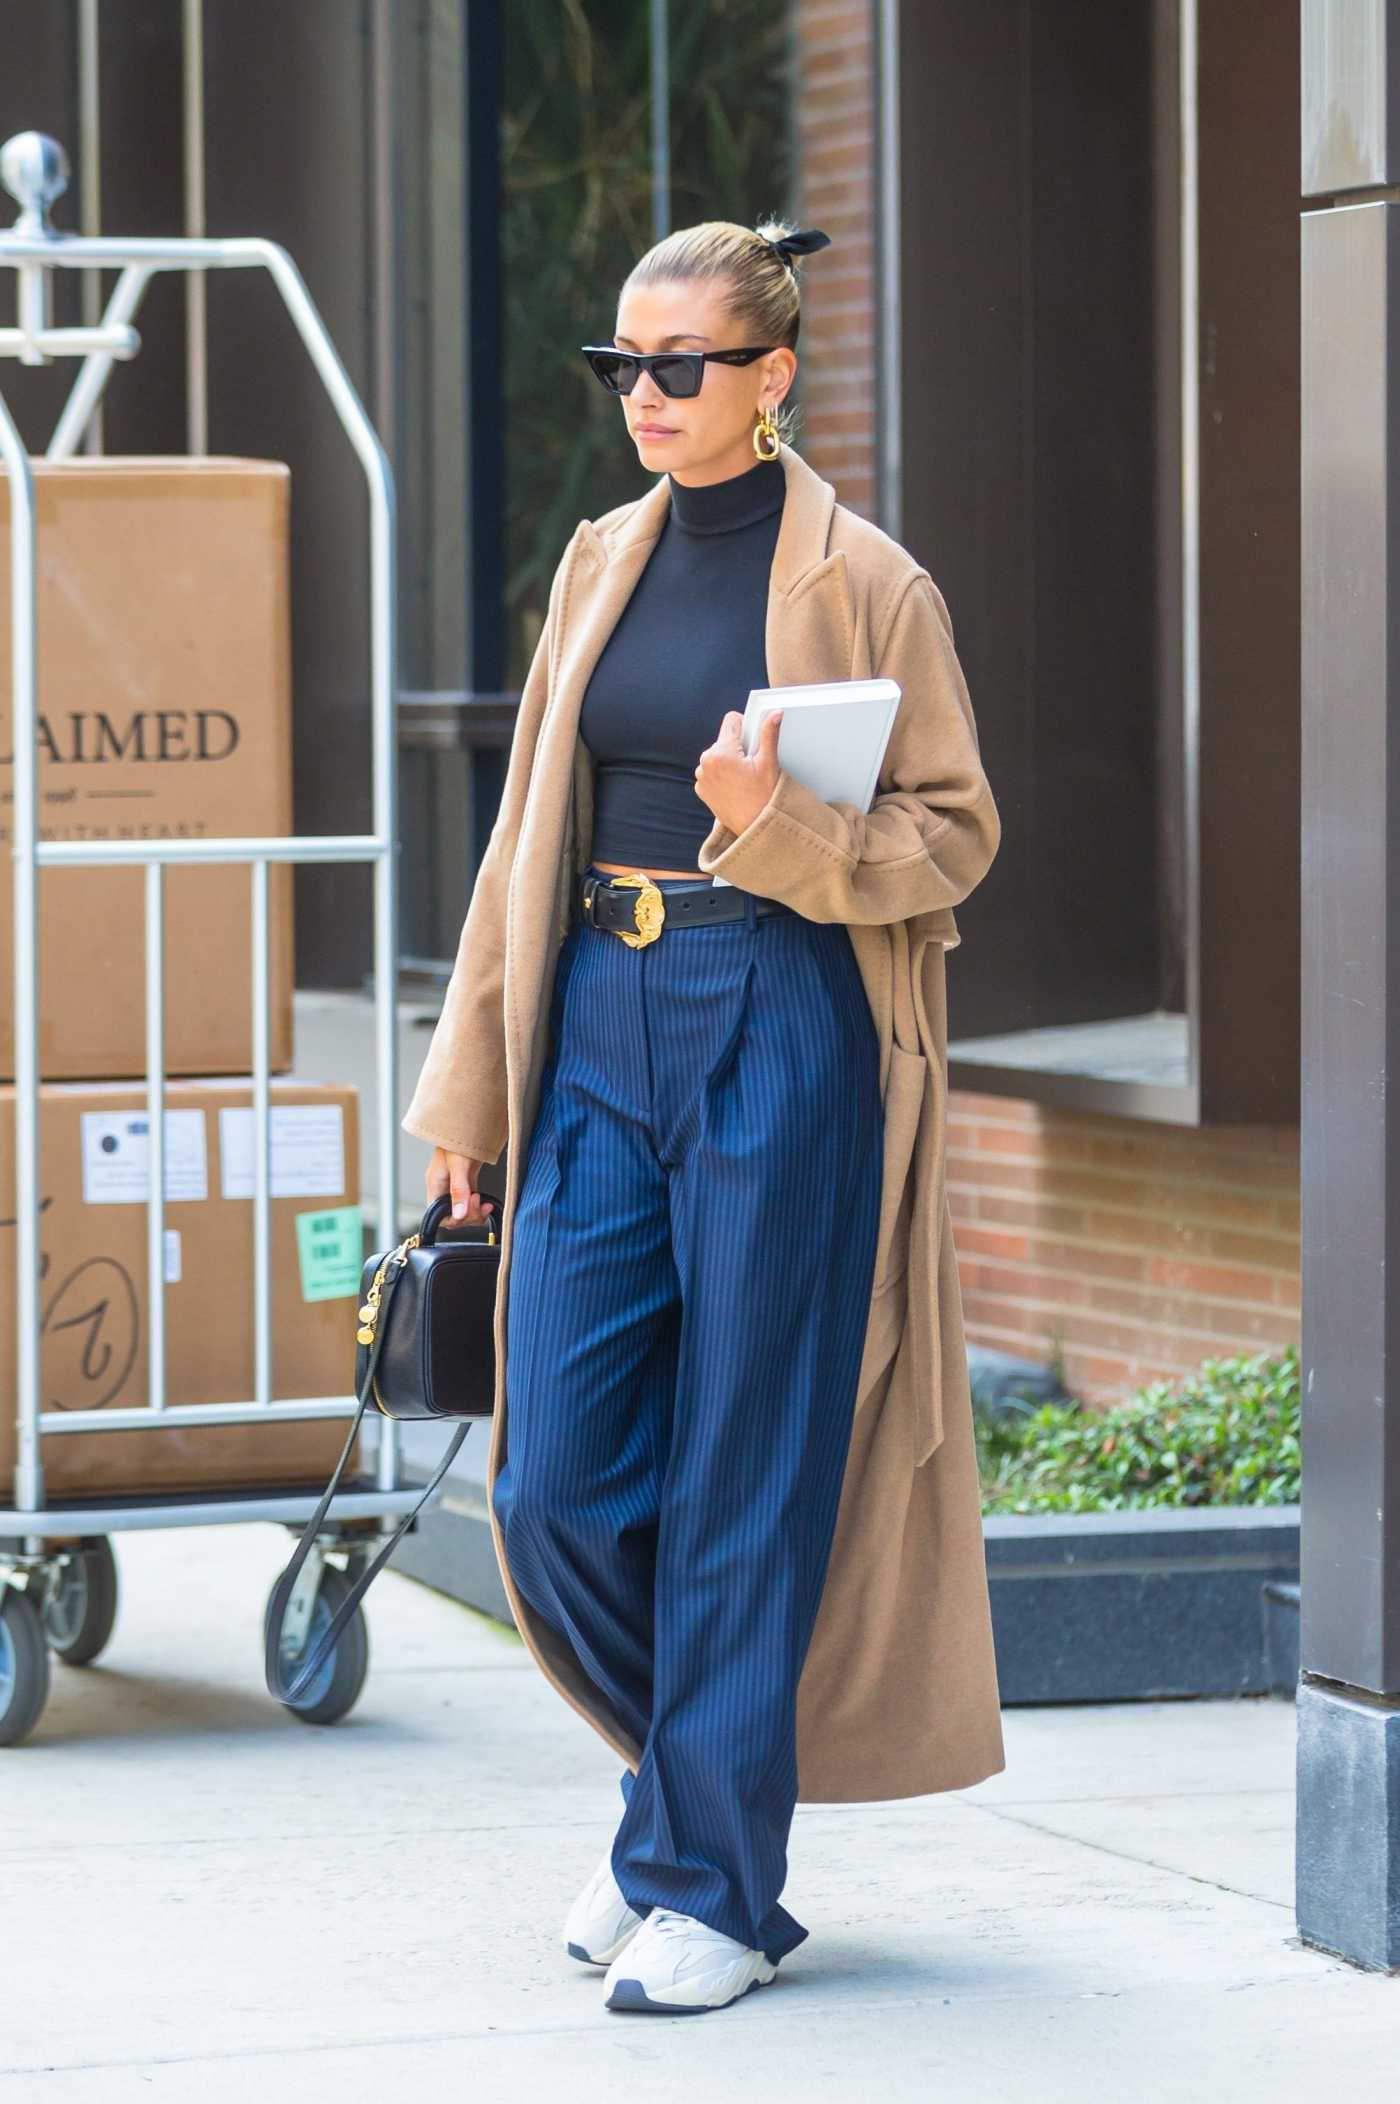 Hailey Baldwin in a Beige Coat Leaves Her Brooklyn Apartment in NYC 05/02/2019